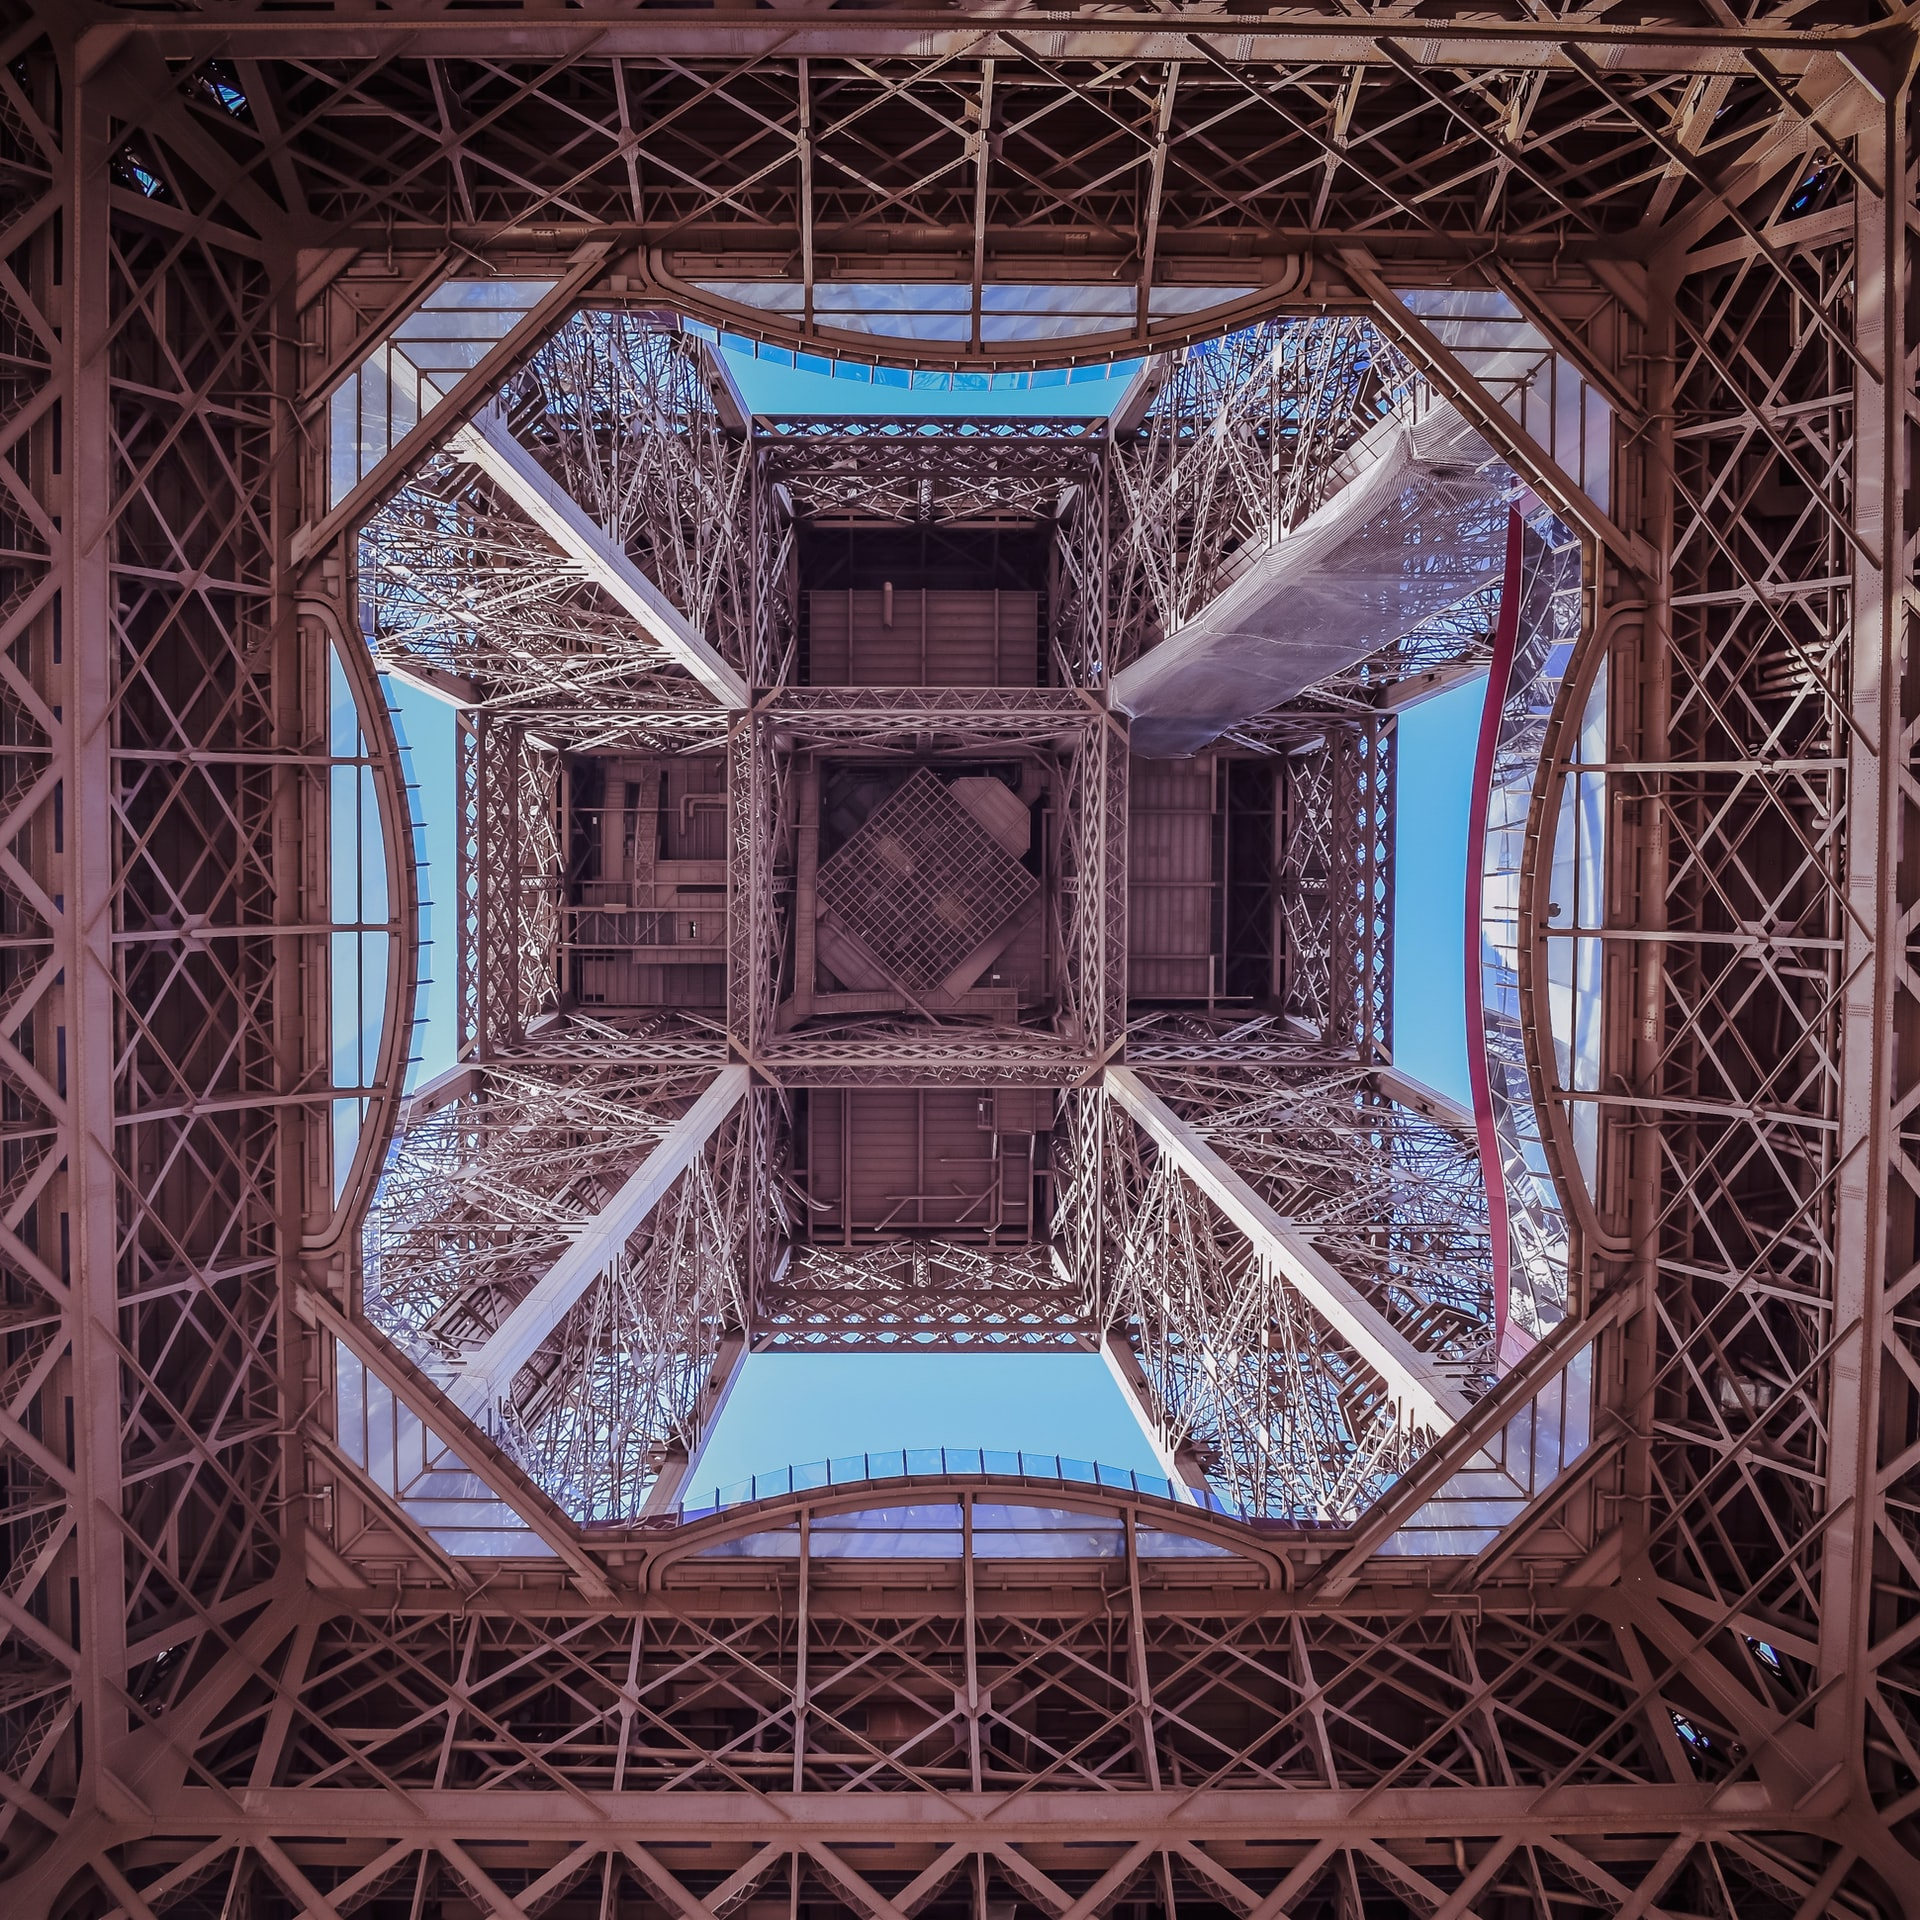 Engineering of the Eiffel Tower seen from below